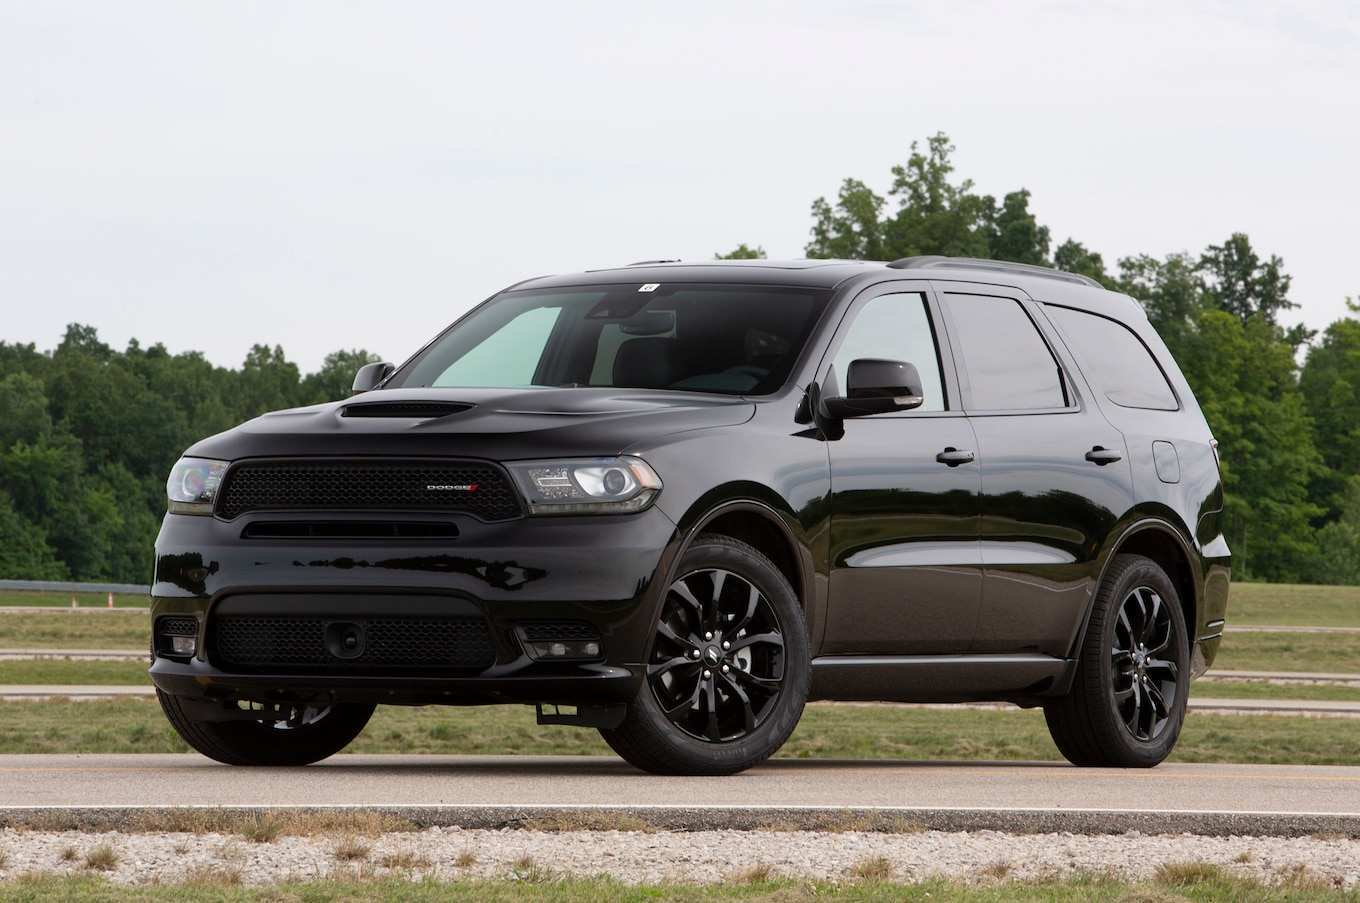 55 Best 2020 Dodge Durango Diesel Srt8 Review